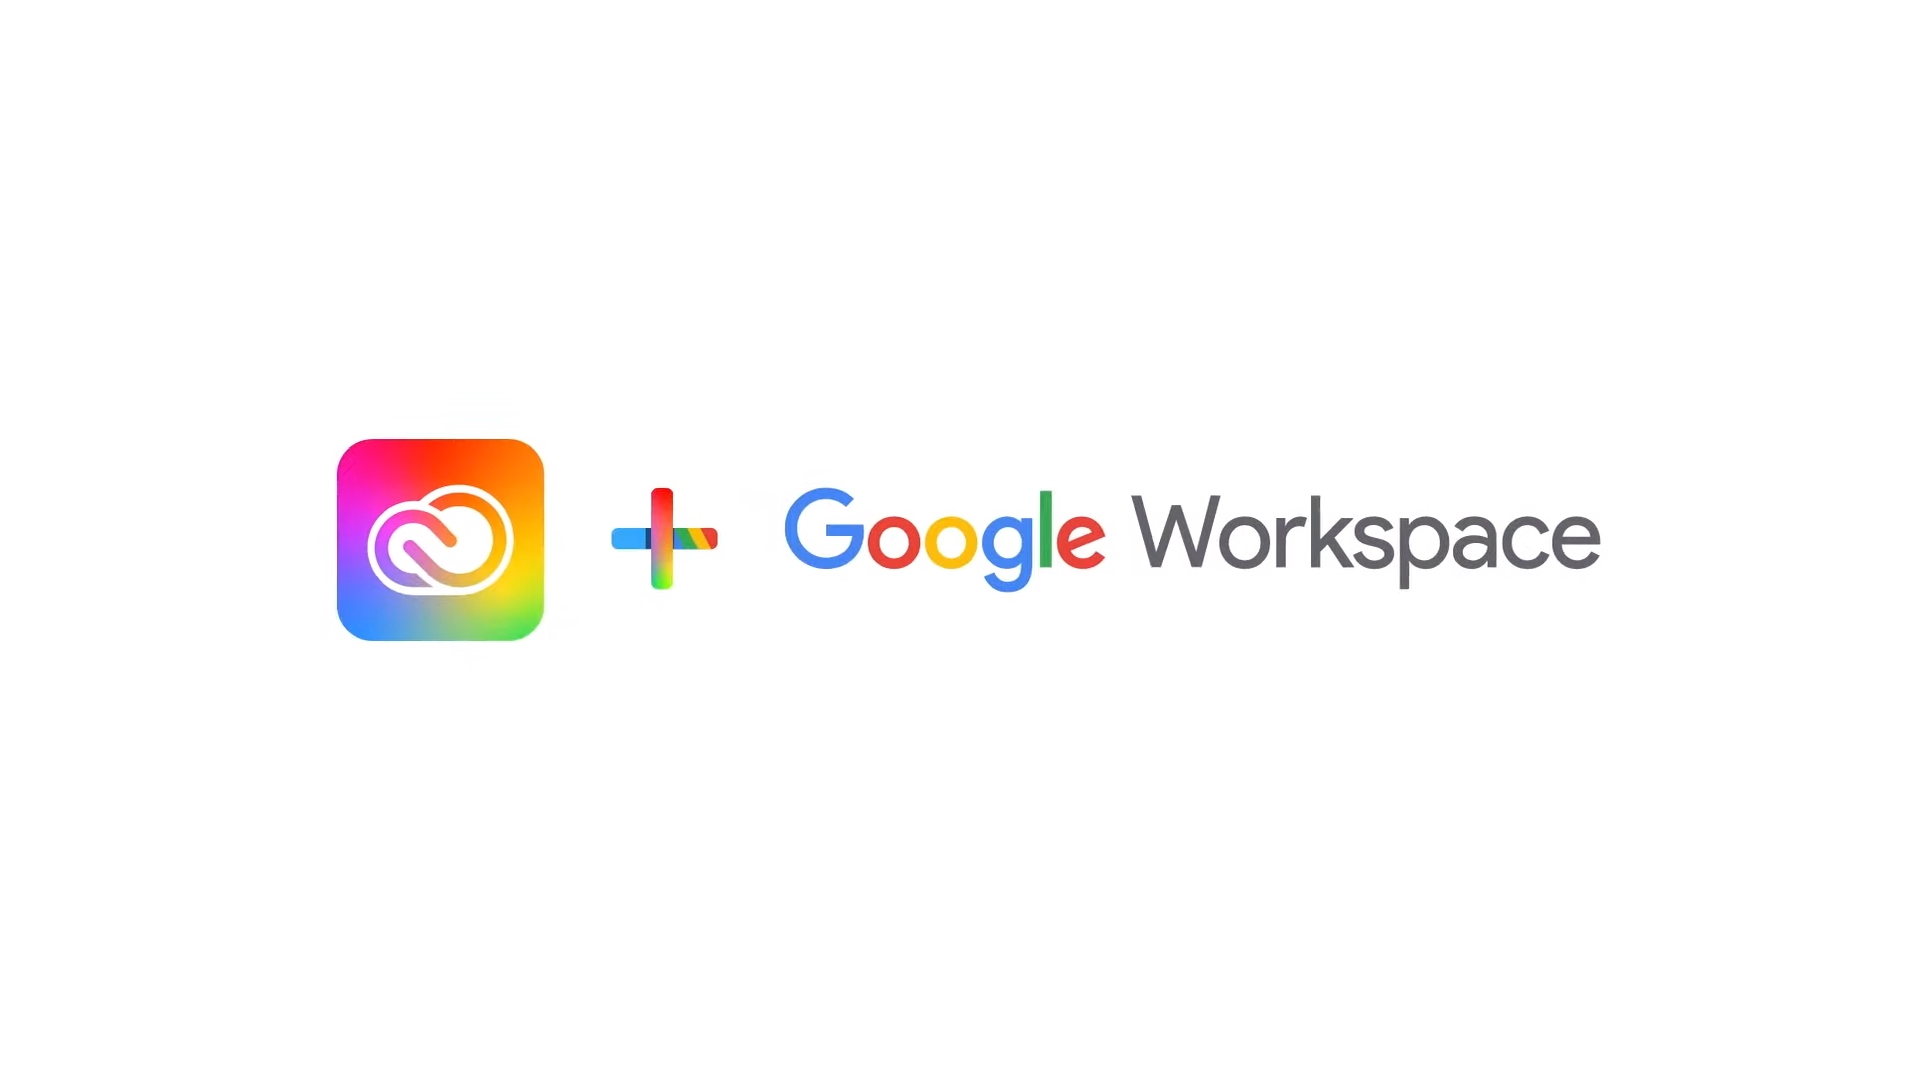 Google Workspace Adobe CC Add-On Now Works With Docs & Slides